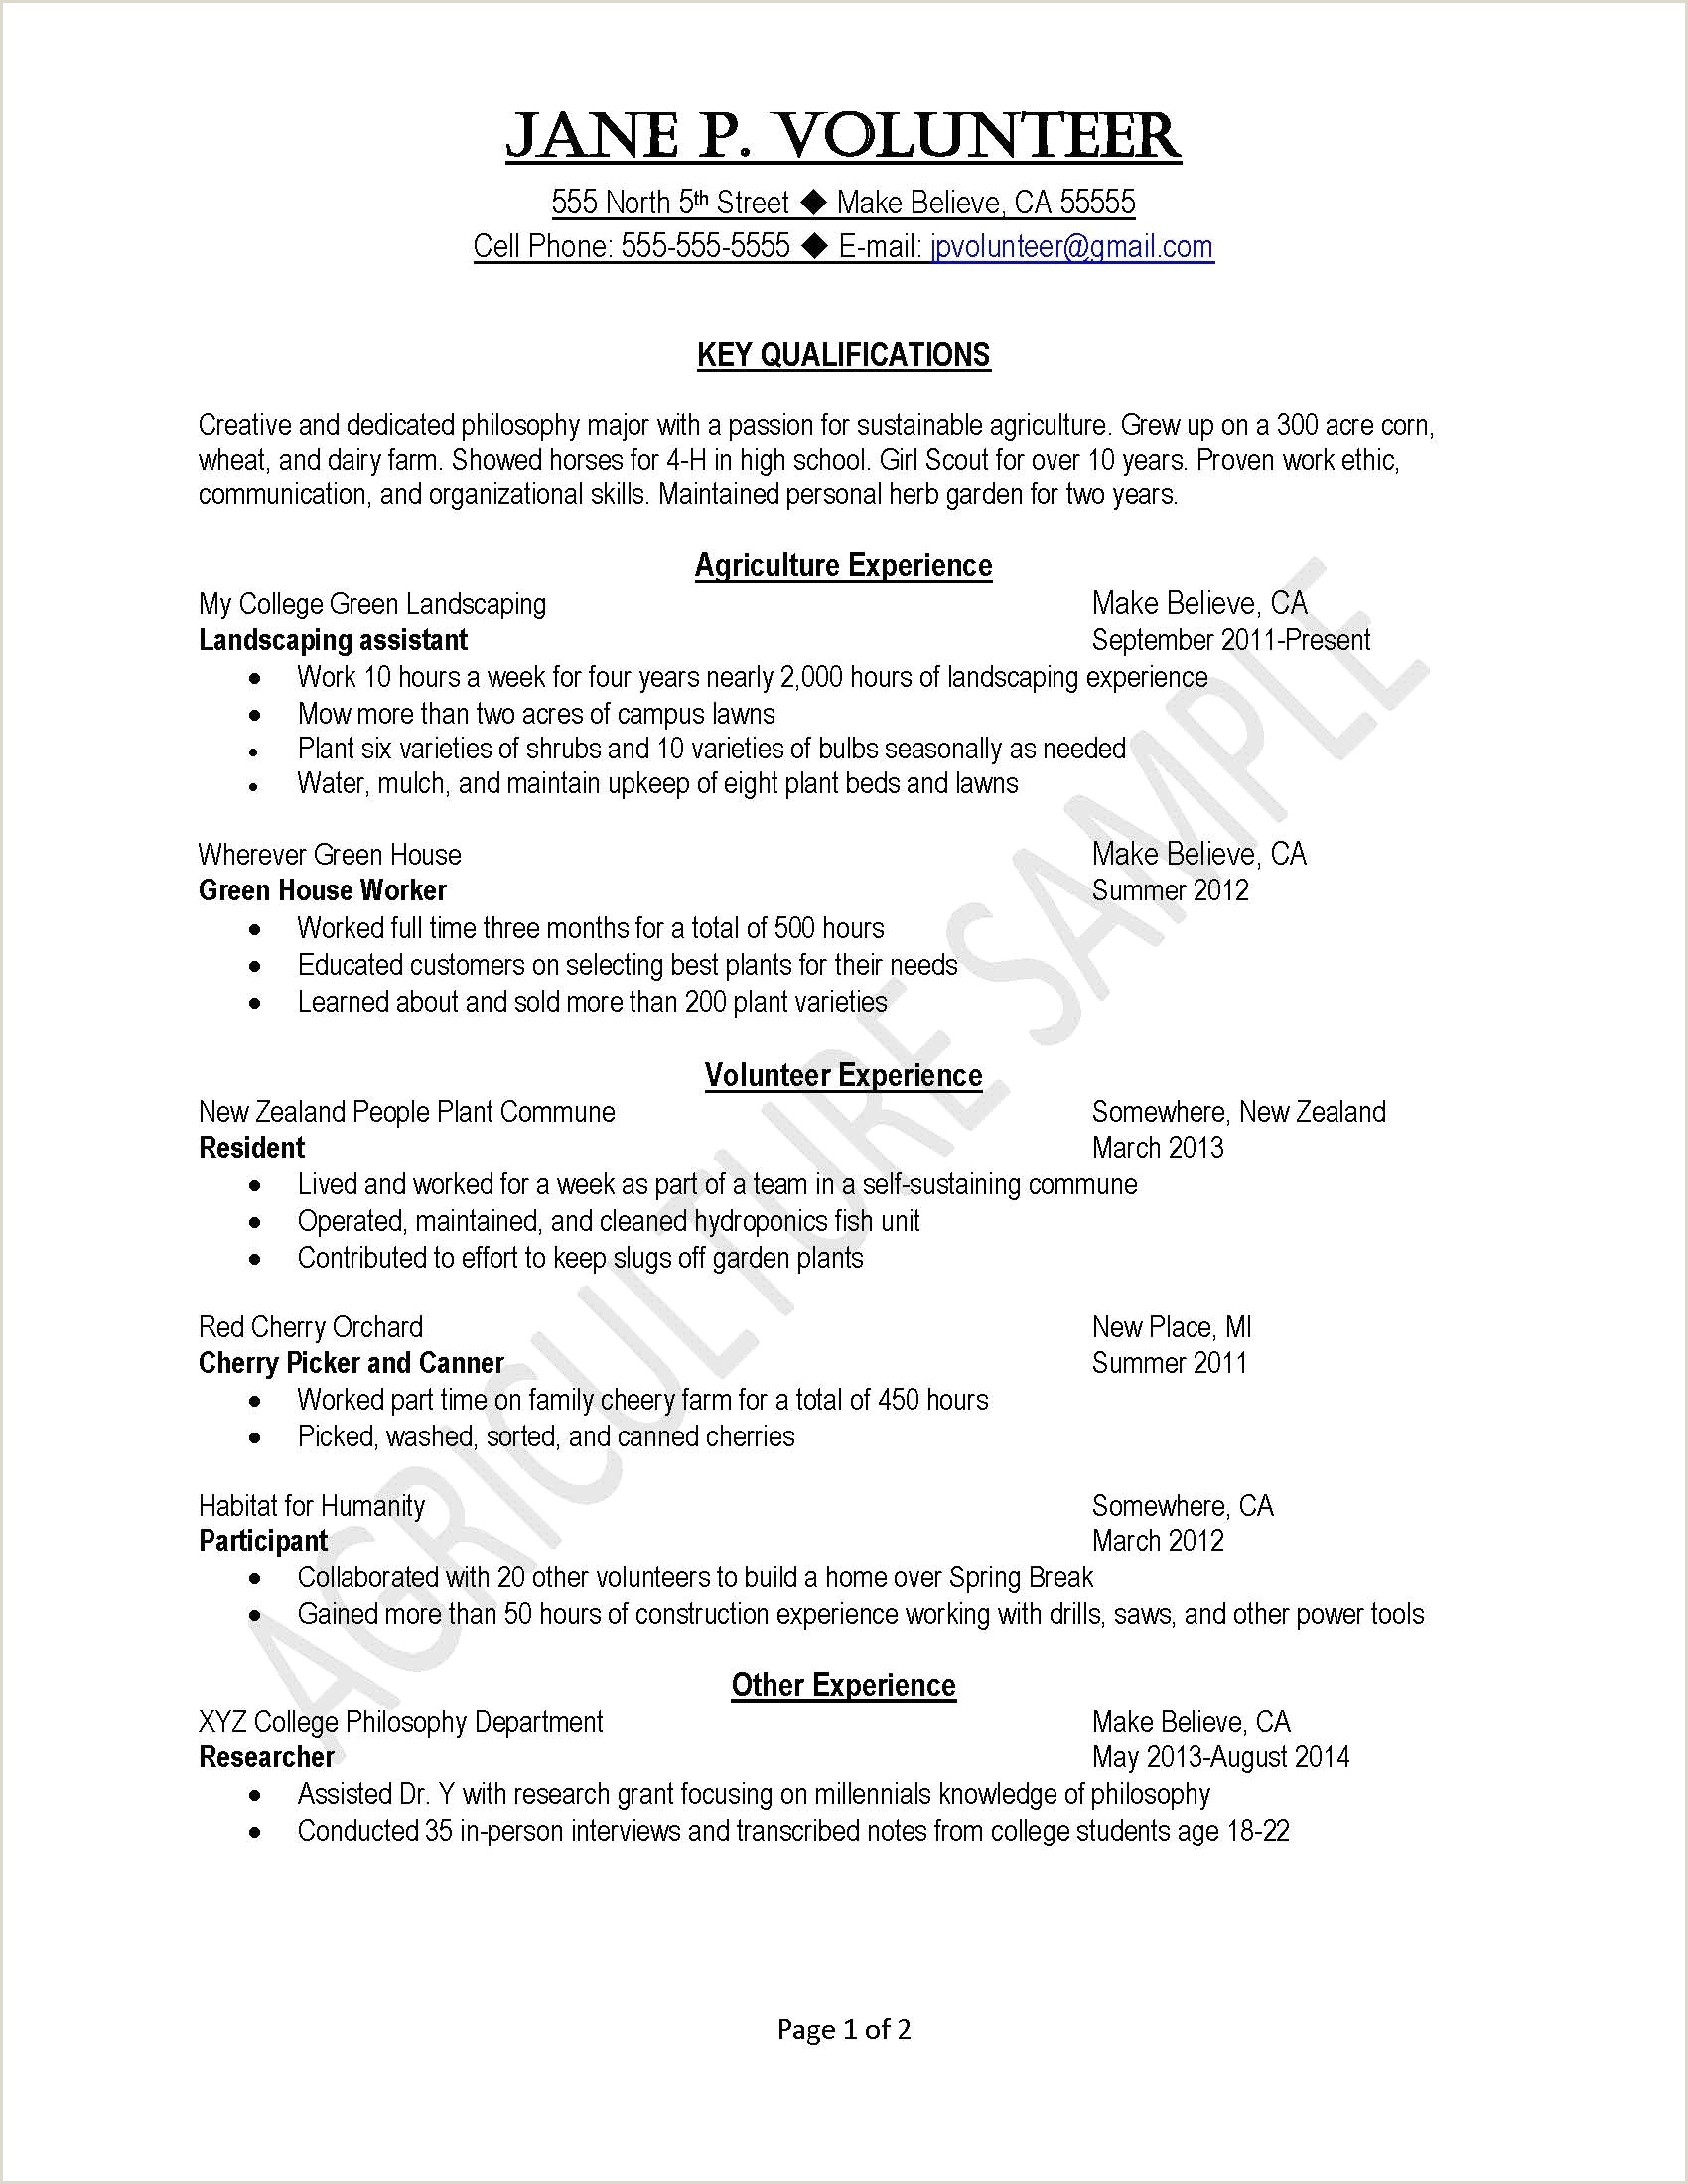 Latest Cv format for Fresh Graduate Recent College Graduate Resume Template Fresh 51 Resume